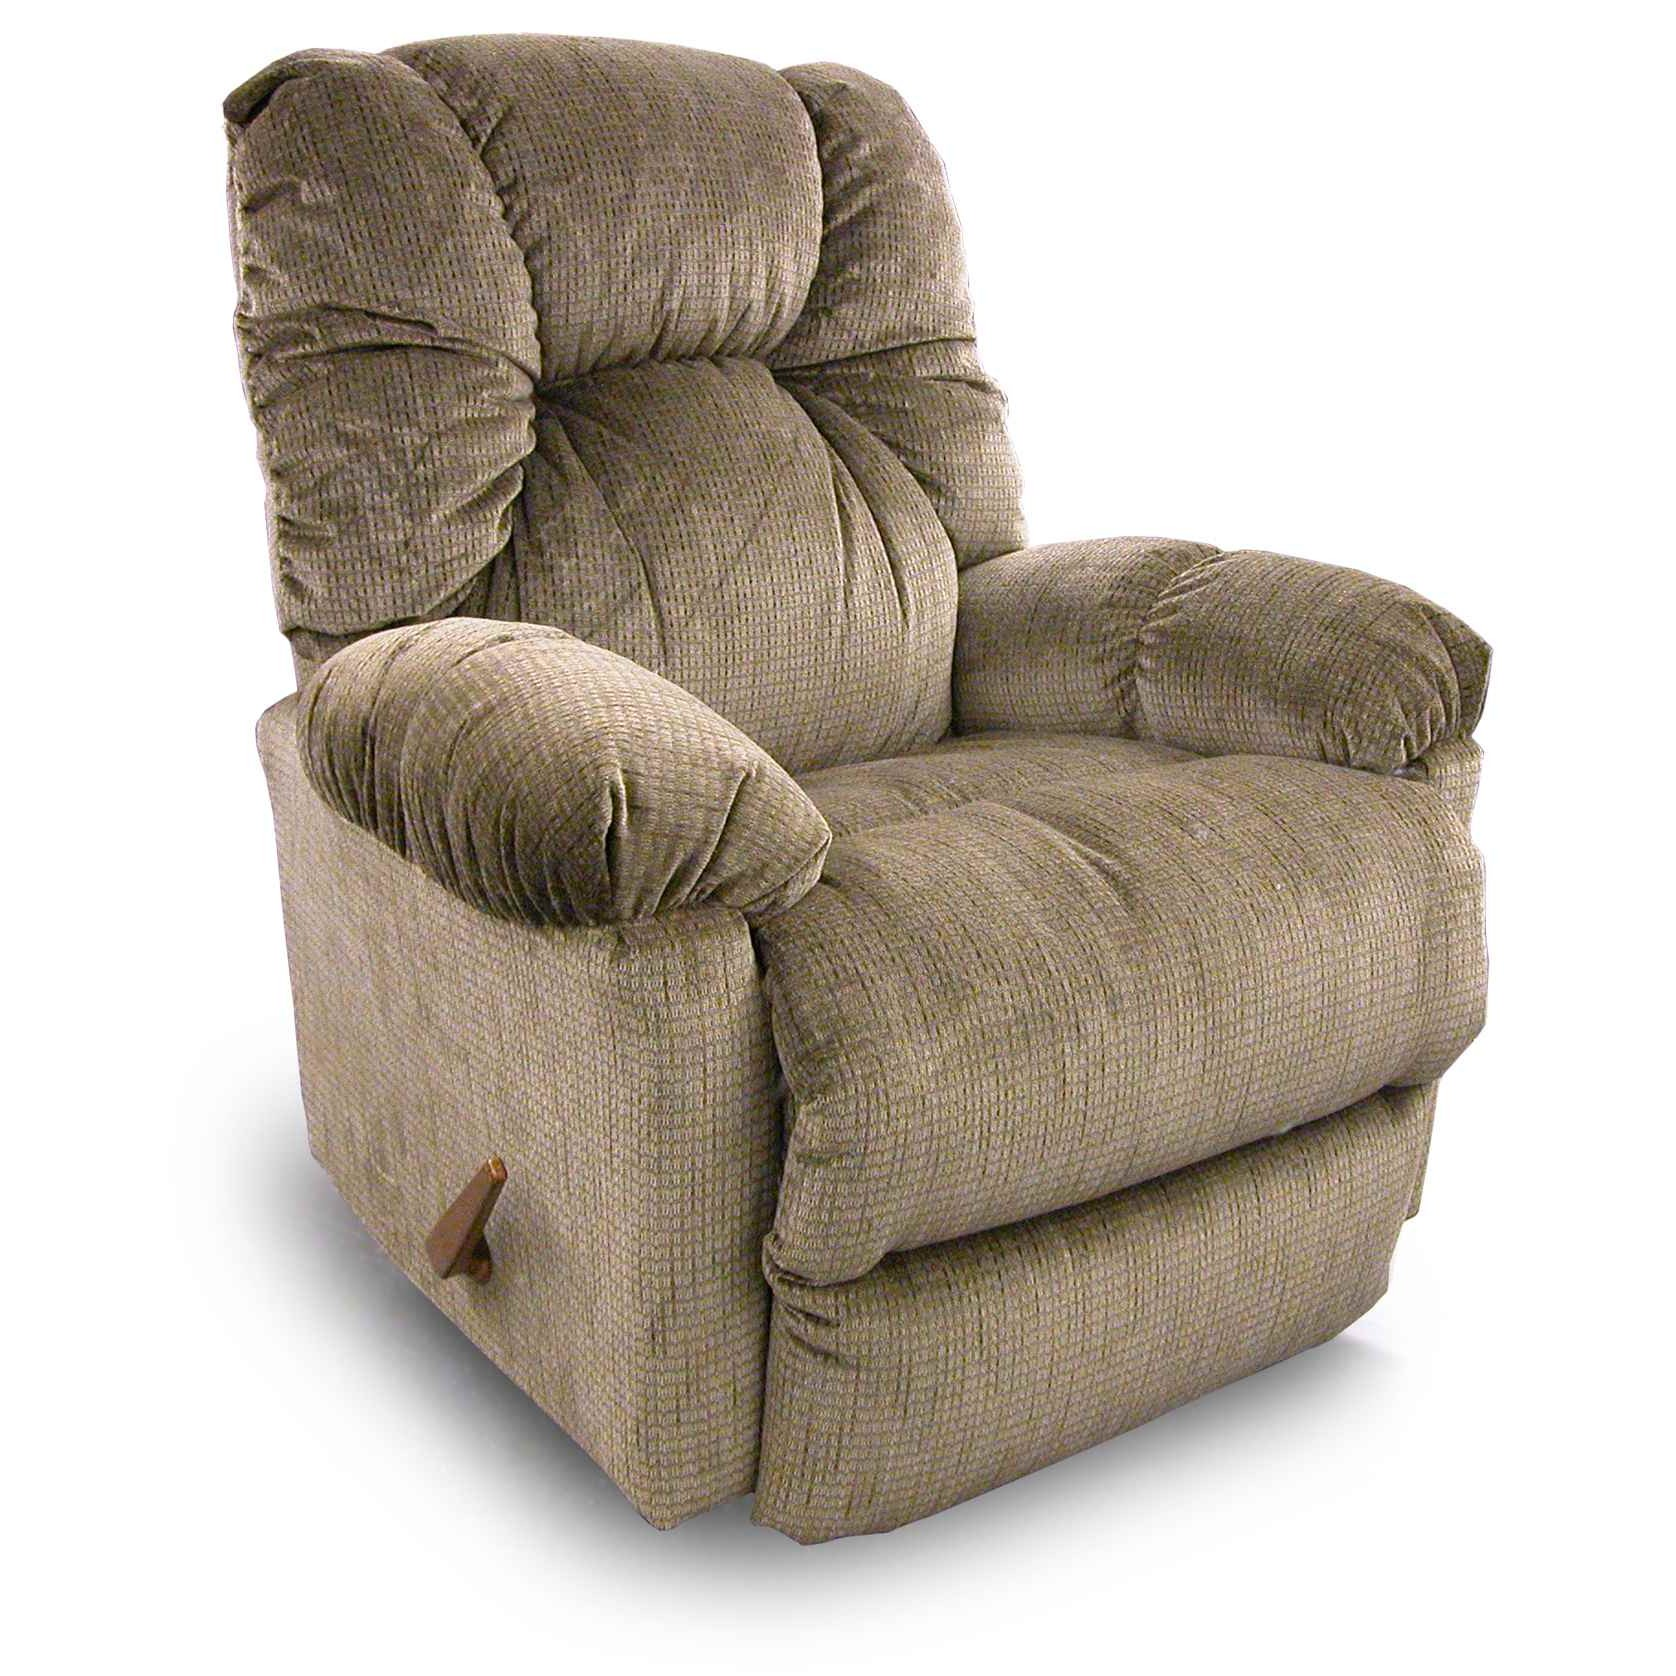 comfortable power lift recliners in tan for living room furniture ideas